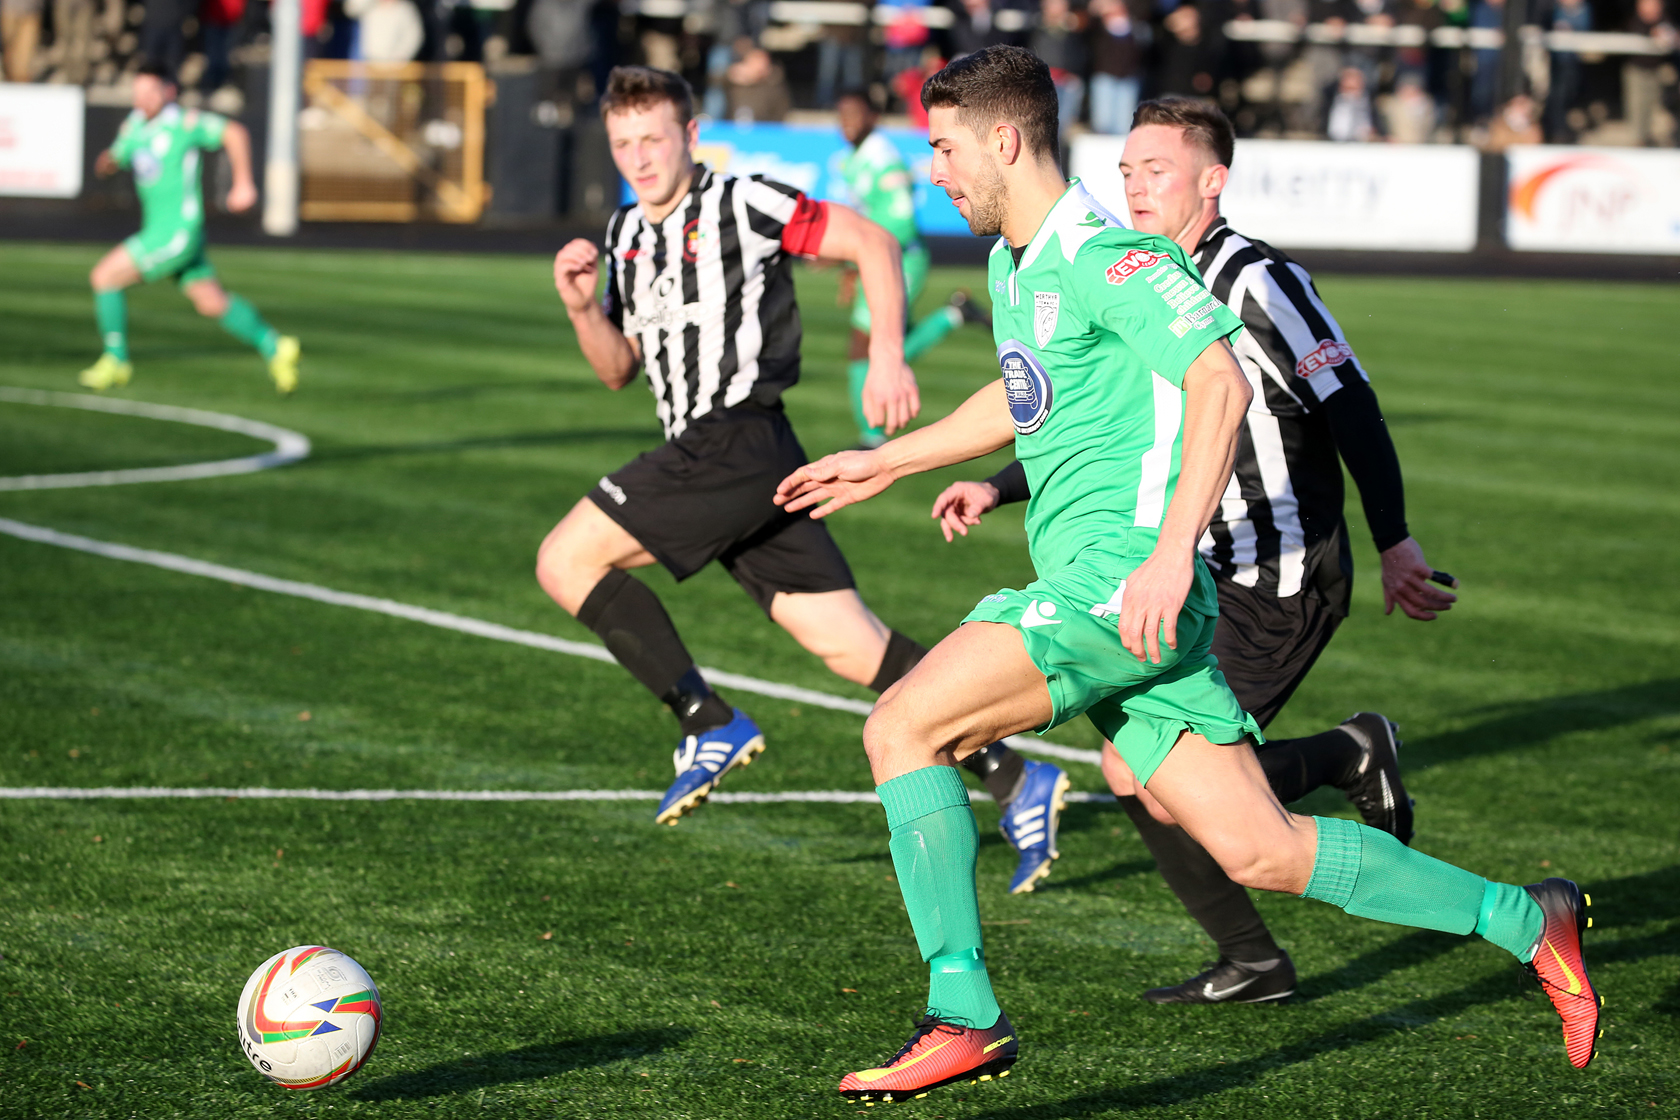 Merthyr Town Go Close, But Can't Quite Earn League Victory